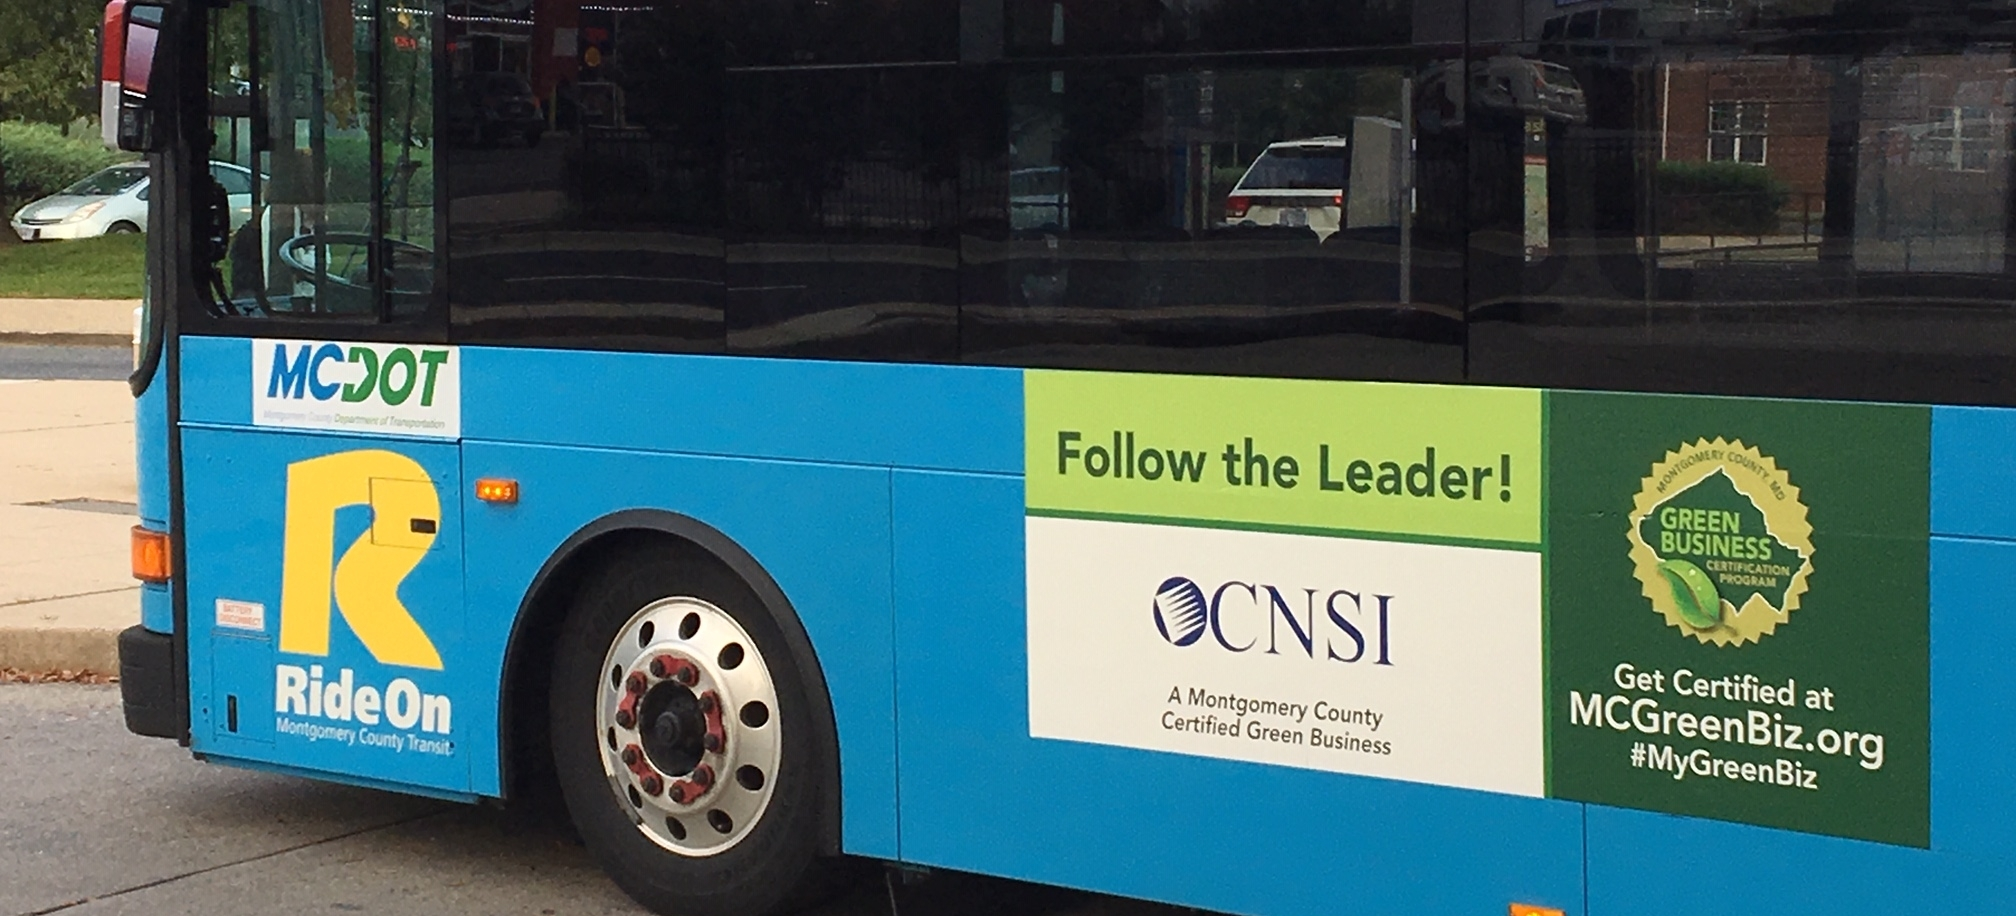 Certified Businesses can receive their logo on the side of a bus!